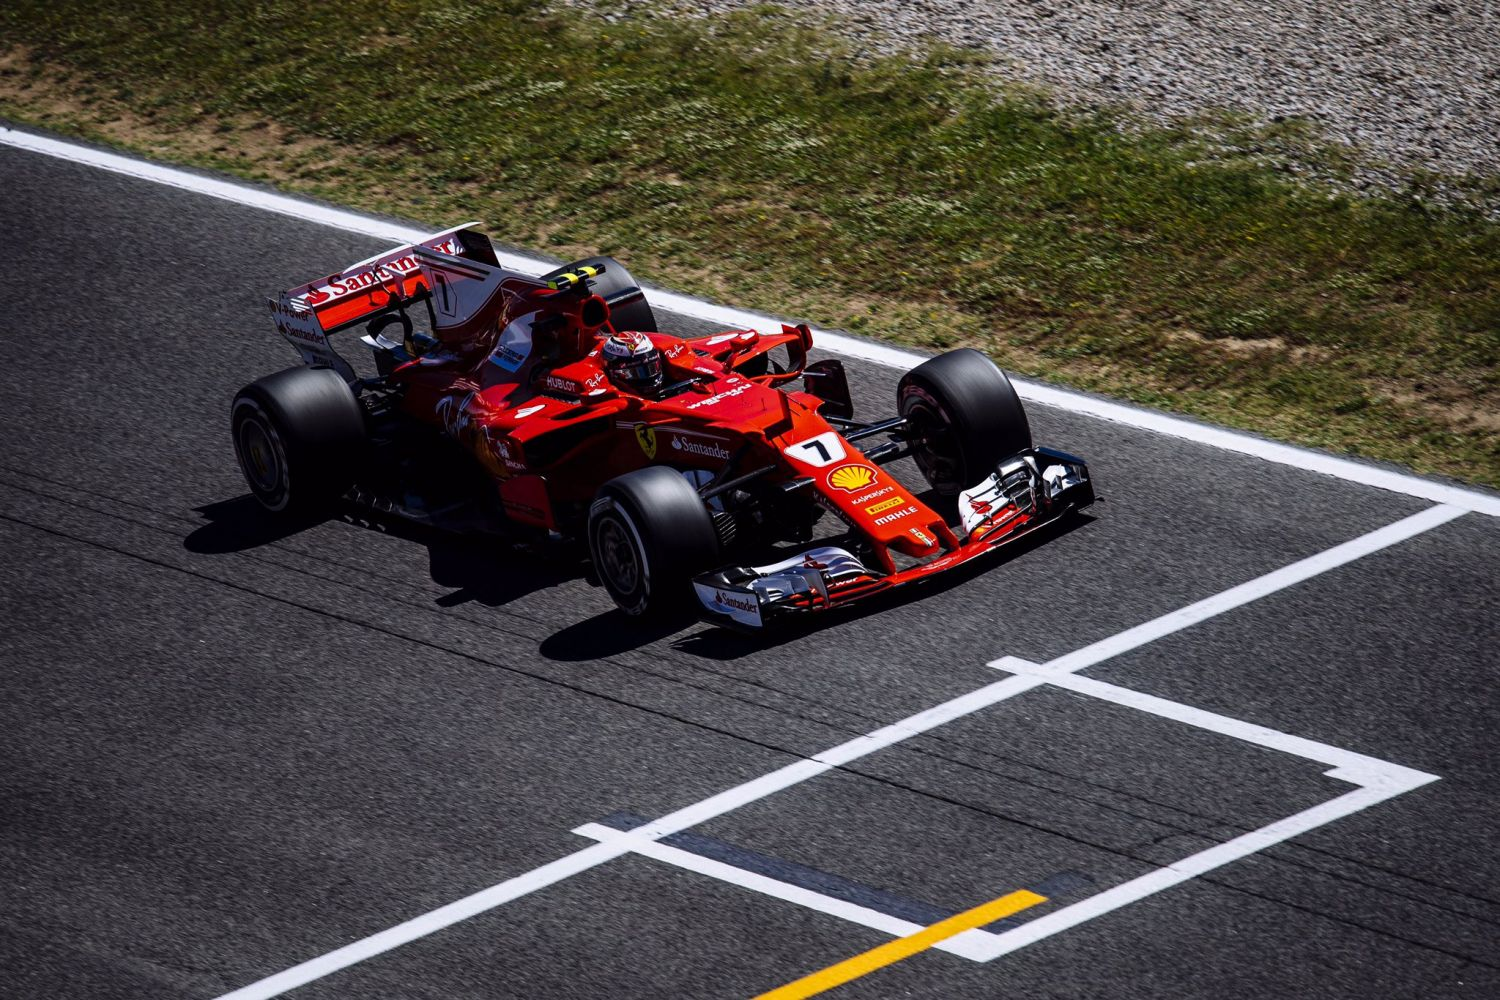 © Ferrari - La Scuderia se replace avant les qualifications